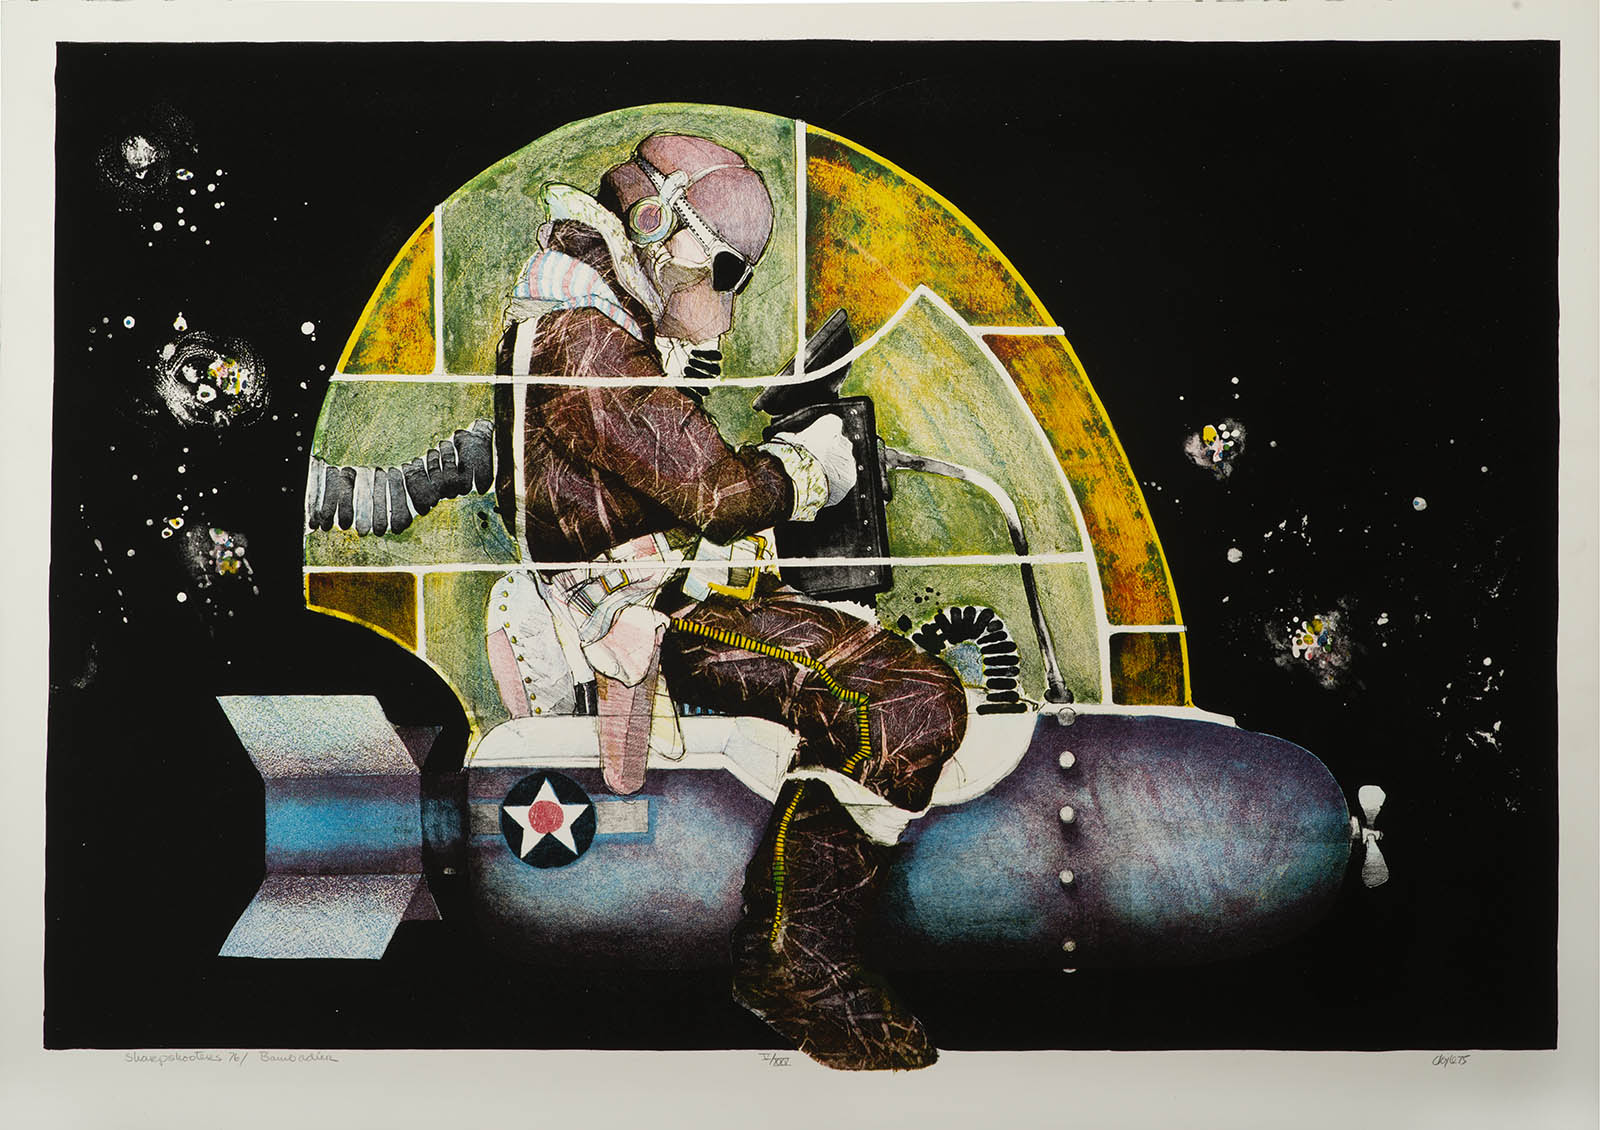 John L. Doyle, Bombardier (from the series: Sharpshooters 76), 1976